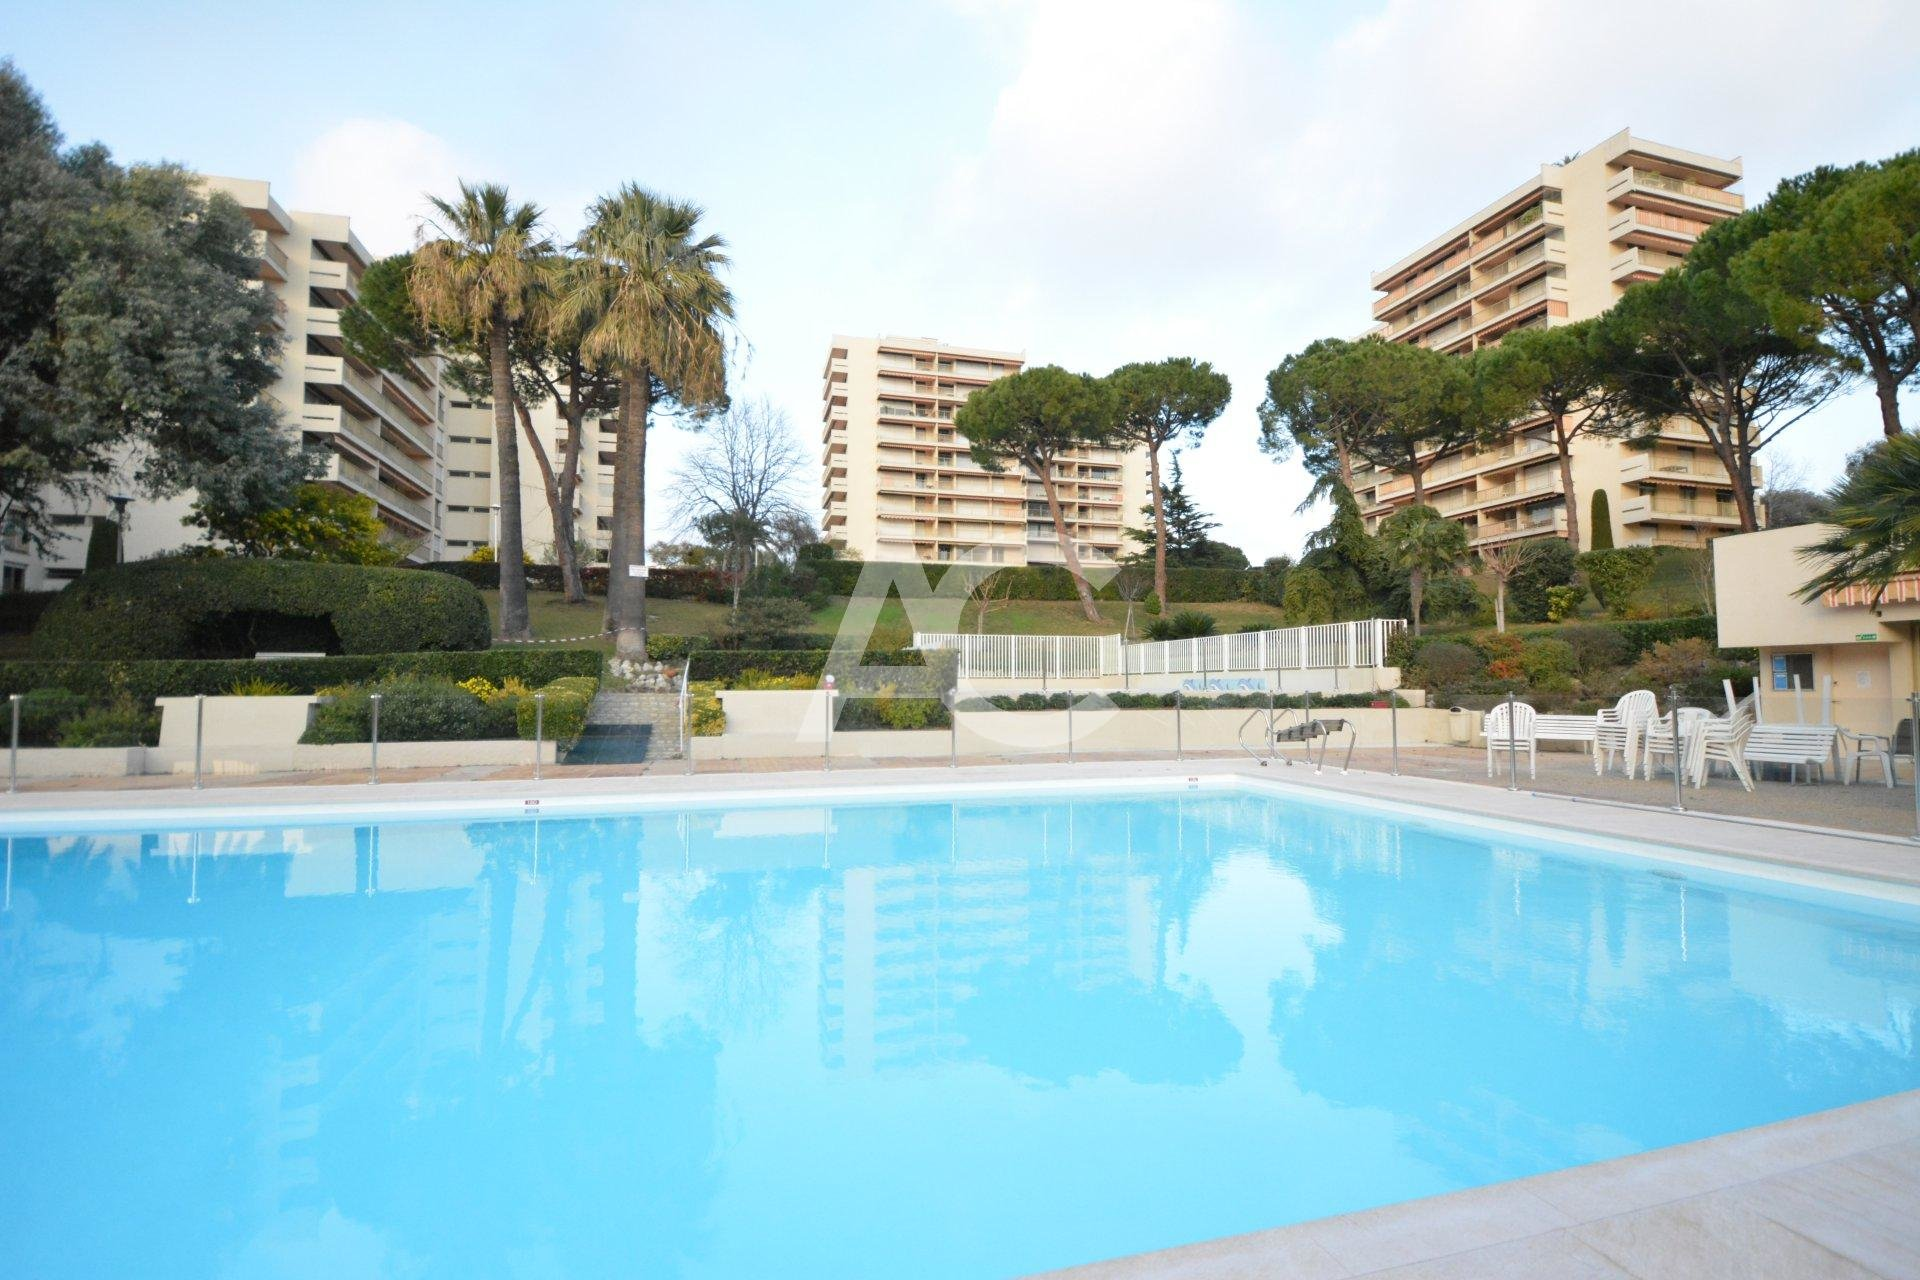 JUAN LES PINS - 2 BEDROOMS APARTMENT IN A HIGH FLOOR LEVEL